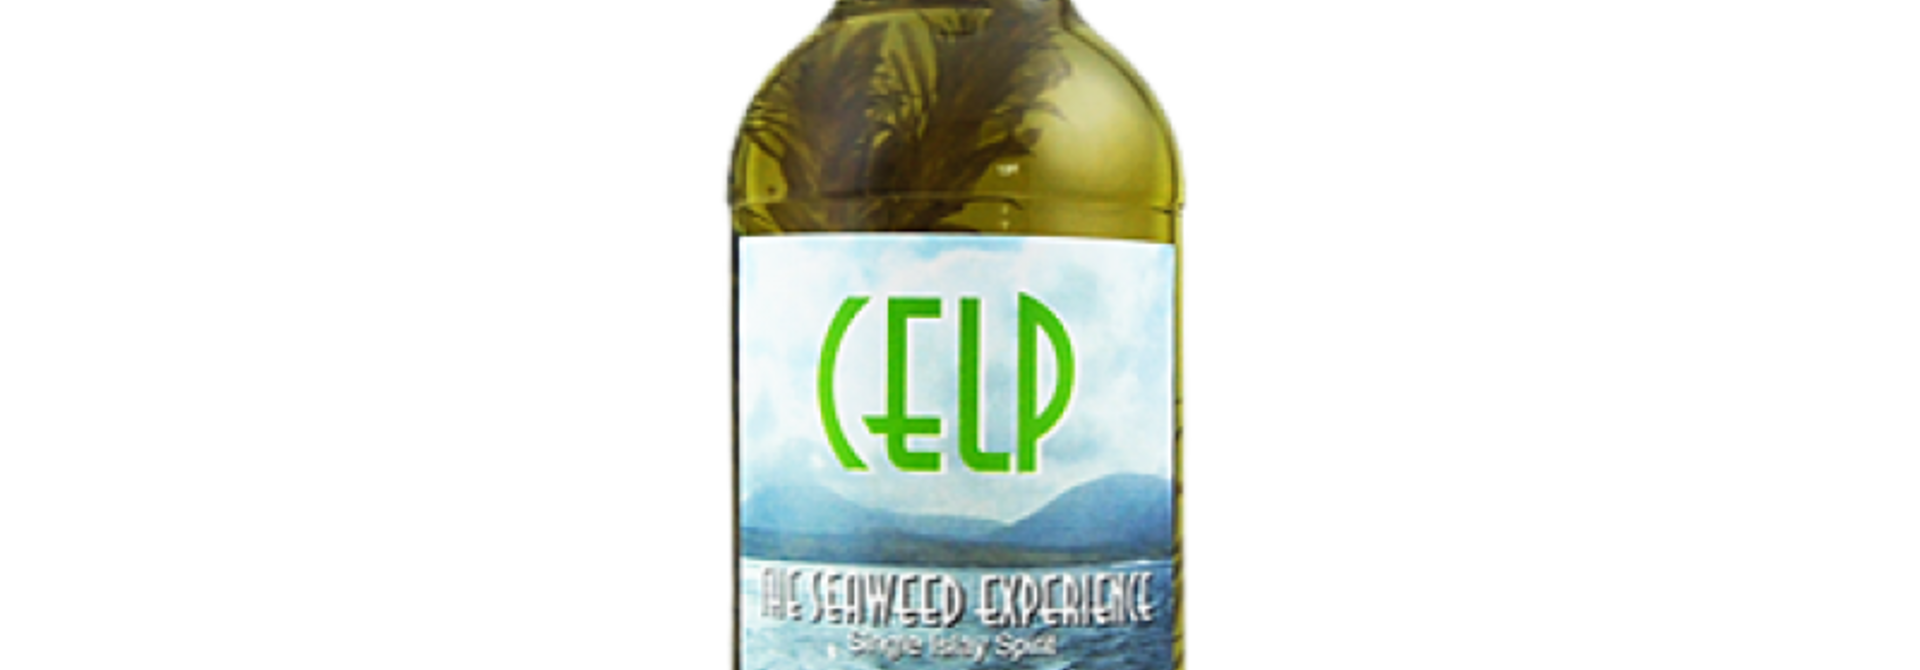 Celp the seaweed experience